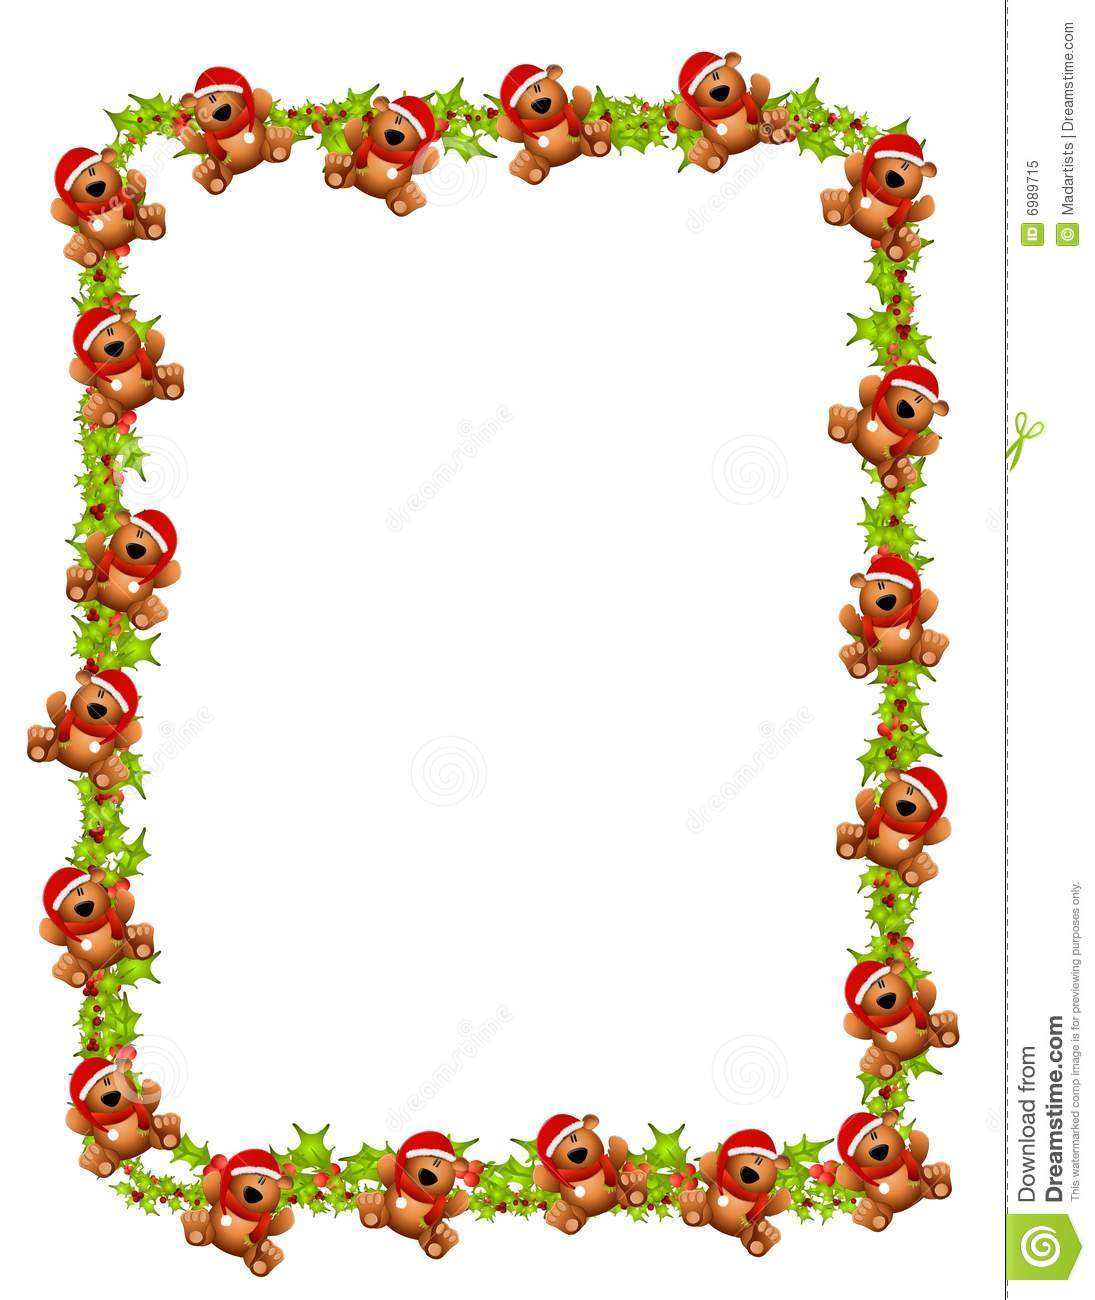 Christmas Teddy Bear Border Royalty Free Stock Photo - Image: 6989715